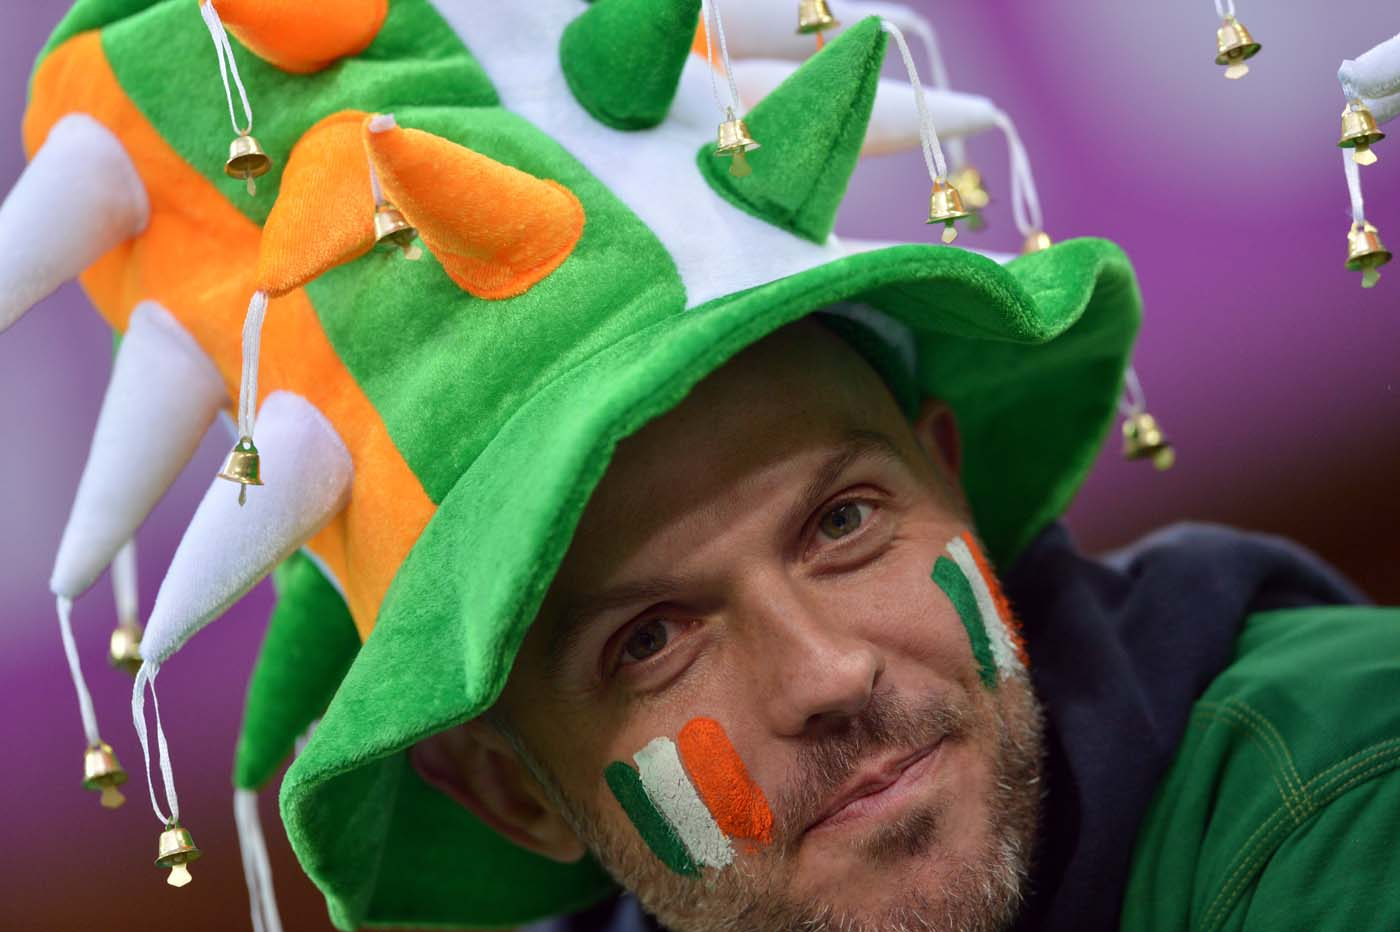 An Irish supporter is pictured prior to the Euro 2012 championships football match Spain vs Republic of Ireland on June 14, 2012 at the Gdansk Arena. (Gabriel Boys/AFP/Getty Images)